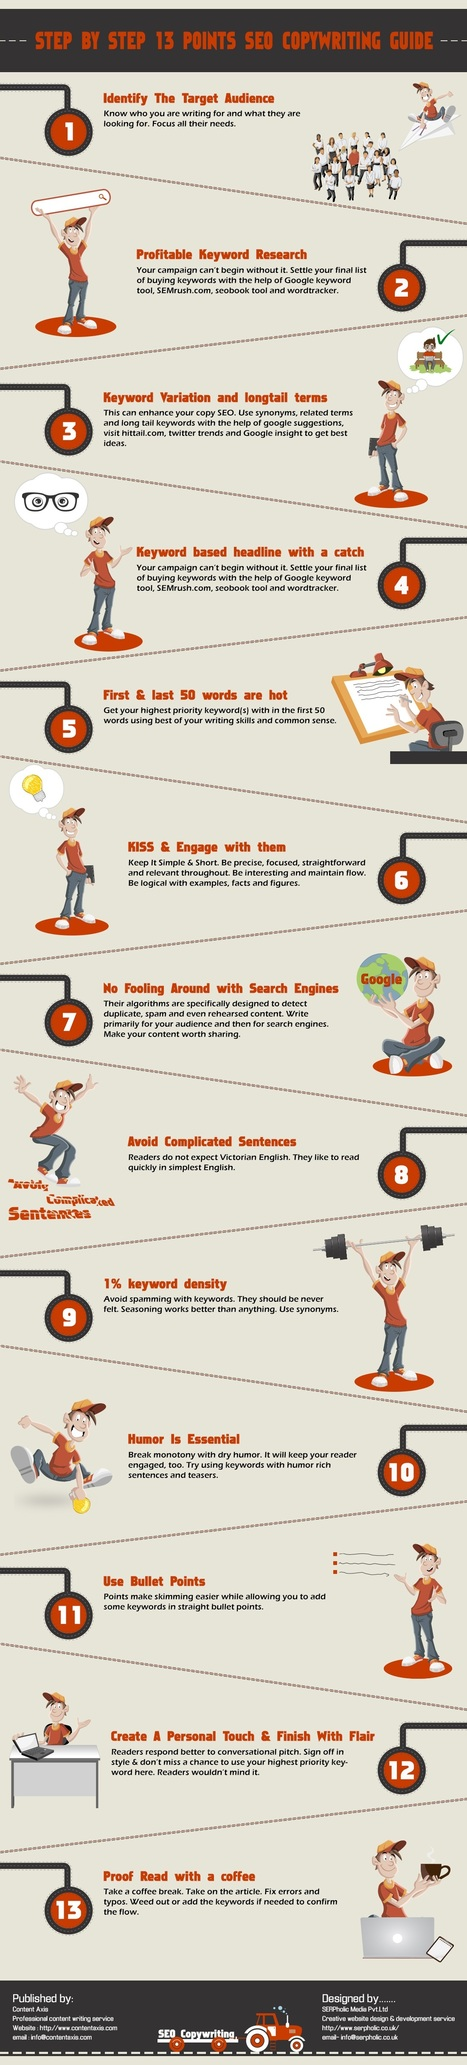 Infographic: Step by Step 13 Points SEO Copywriting Guide | e-BUZZERS | Scoop.it